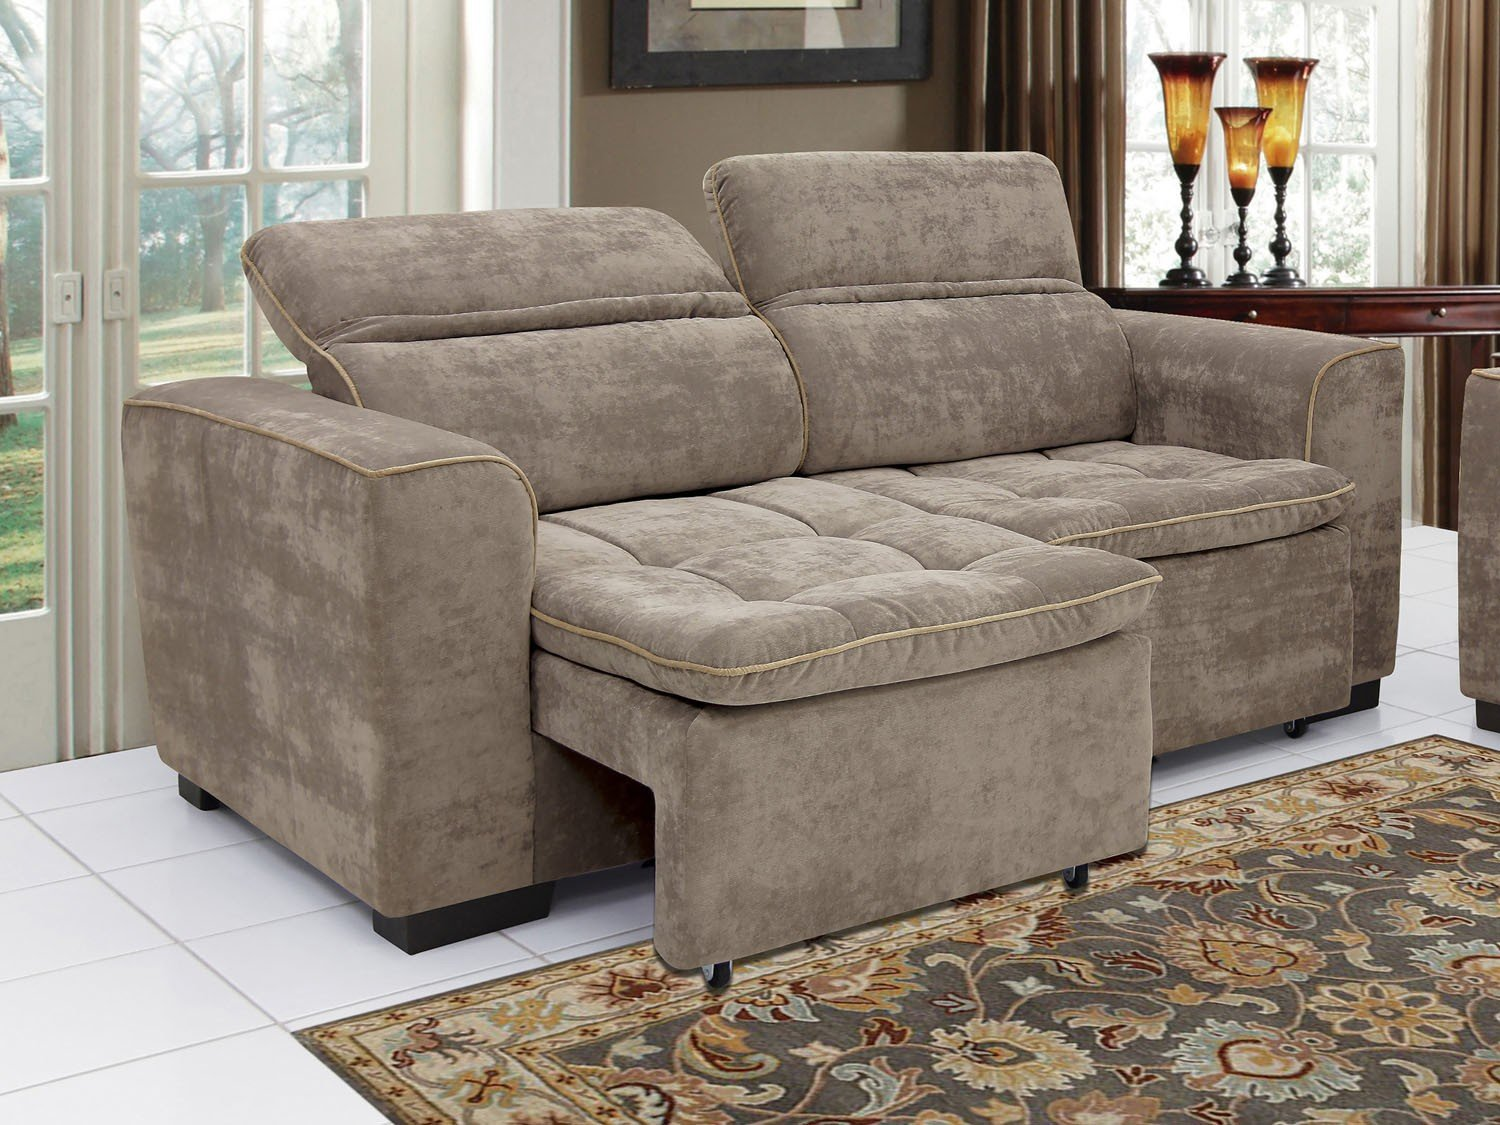 Sof retr til e reclin vel 3 lugares athina linoforte for Sofa 03 lugares retratil e reclinavel